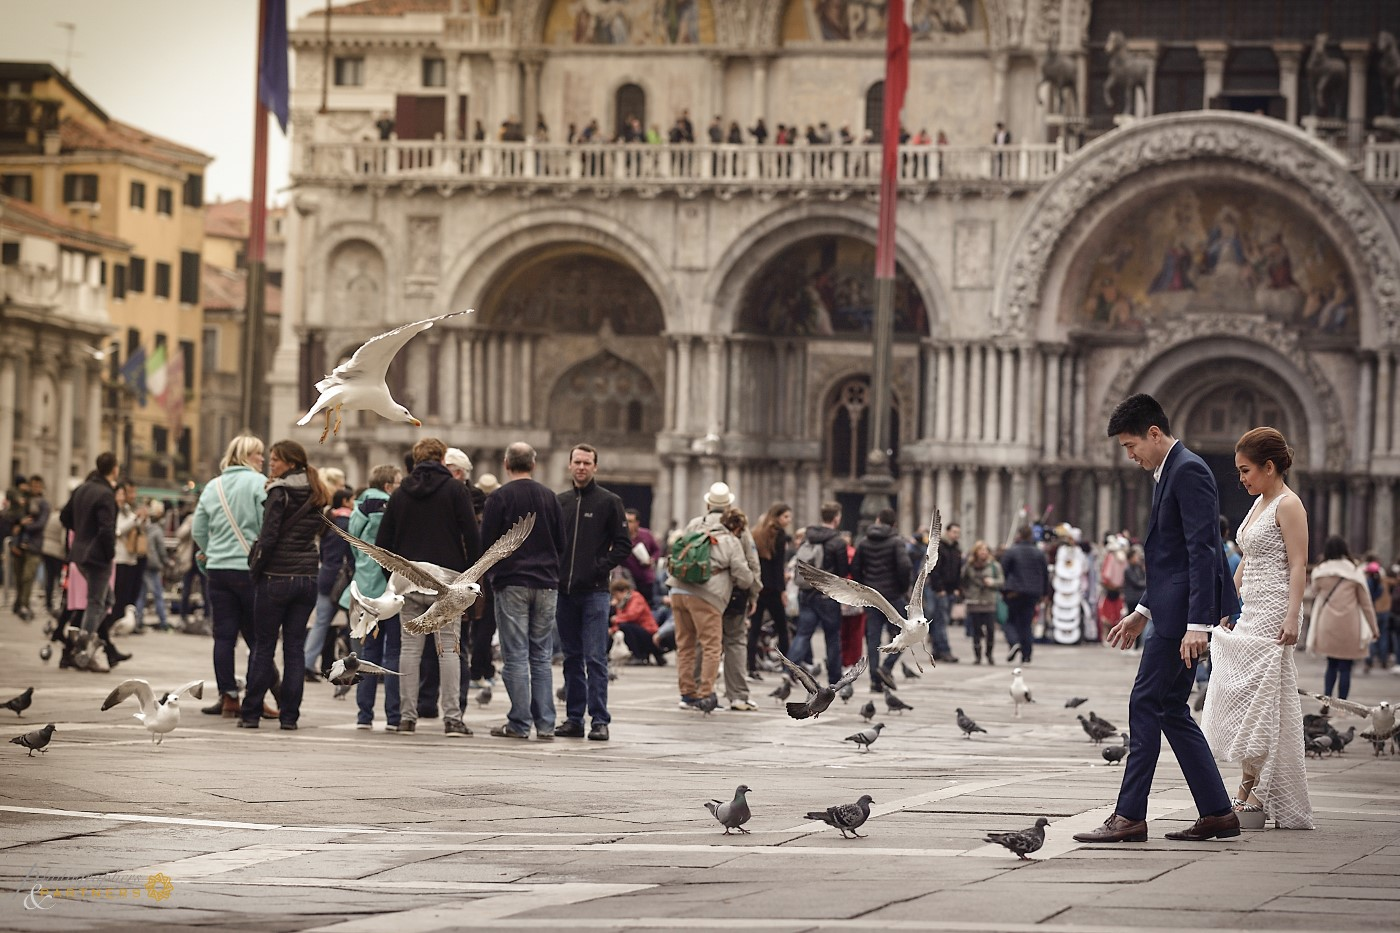 Crossing Piazza San Marco between pigeons and seagulls 🍃